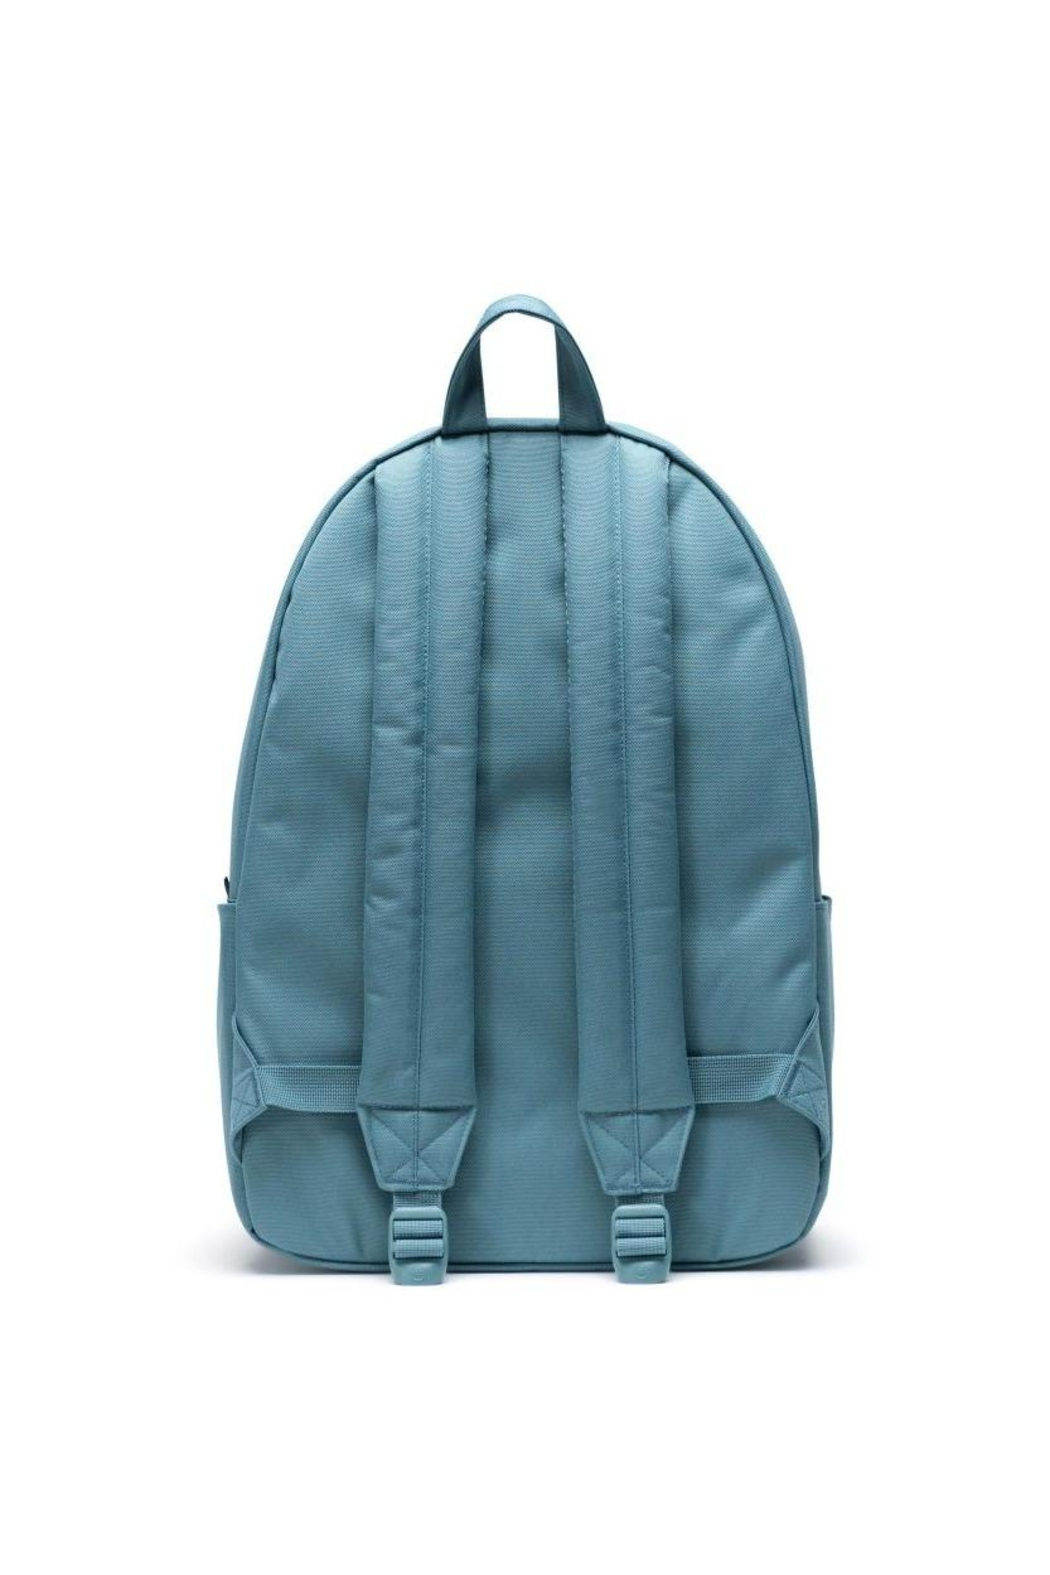 Herschel Supply Co. Blue Classic Backpack - Back Cropped Image